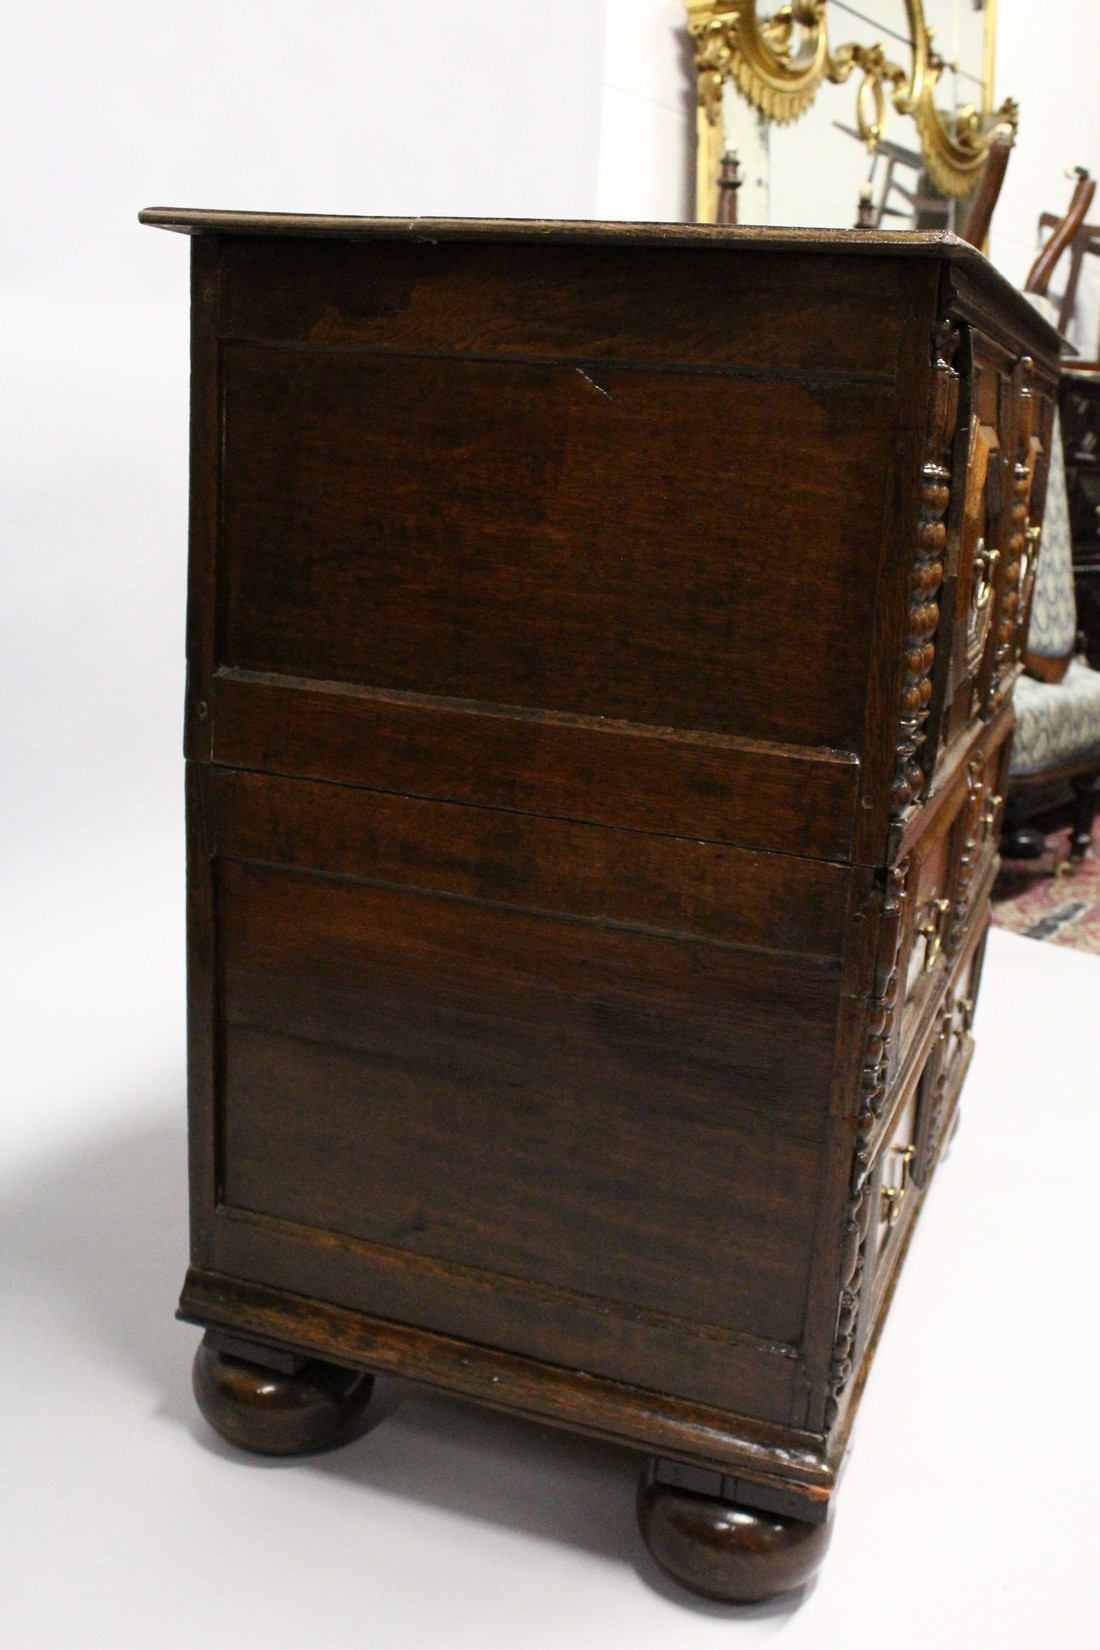 A GOOD LATE 17TH CENTURY LIGHT OAK TWO PIECE LINEN FOLD FRONT CHEST OF THREE DRAWERS, with - Image 3 of 6